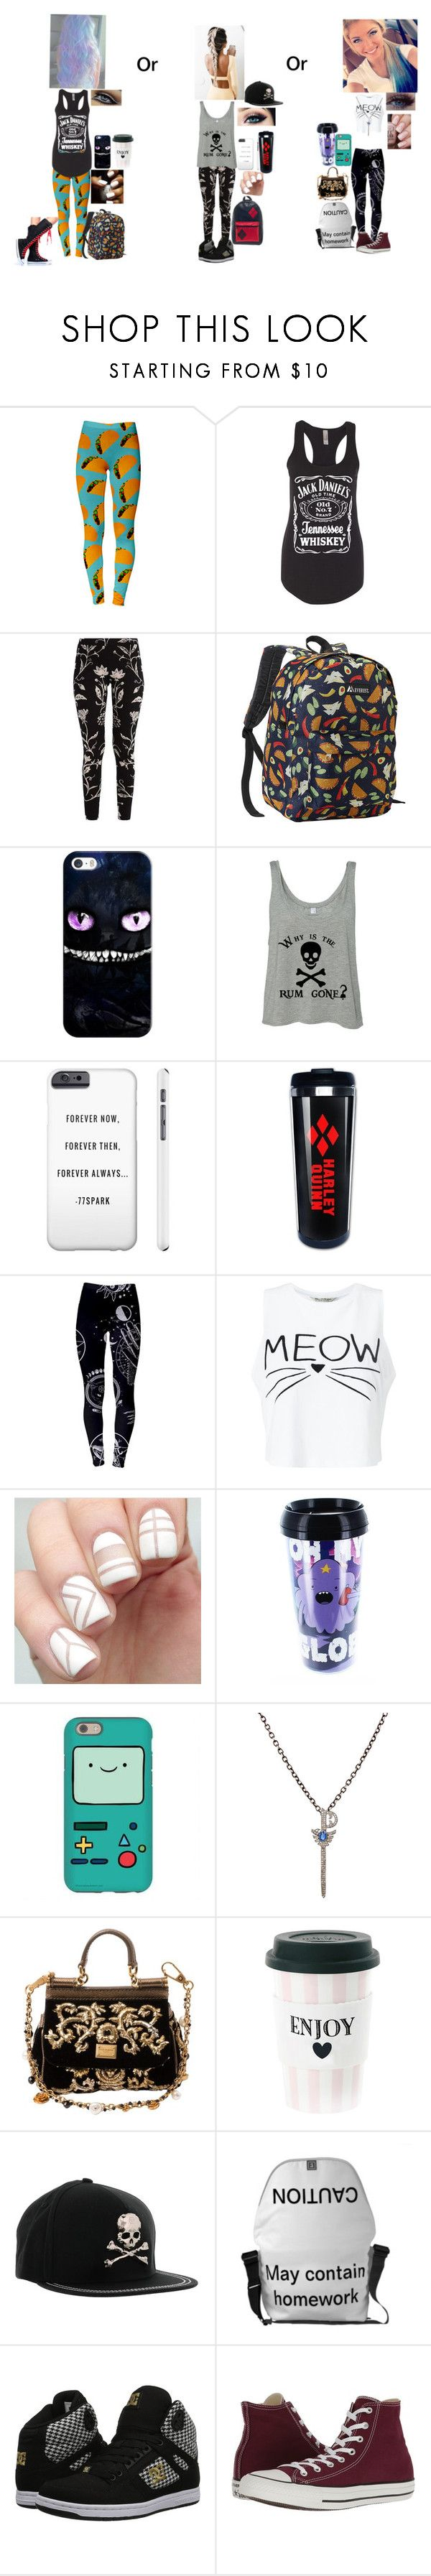 """For My Story On Wattpad"" by rhiannabliss on Polyvore featuring Everest, Casetify, Miss Selfridge, Feathered Soul, Dolce&Gabbana, Miss Étoile, Philipp Plein, DC Shoes and Converse"